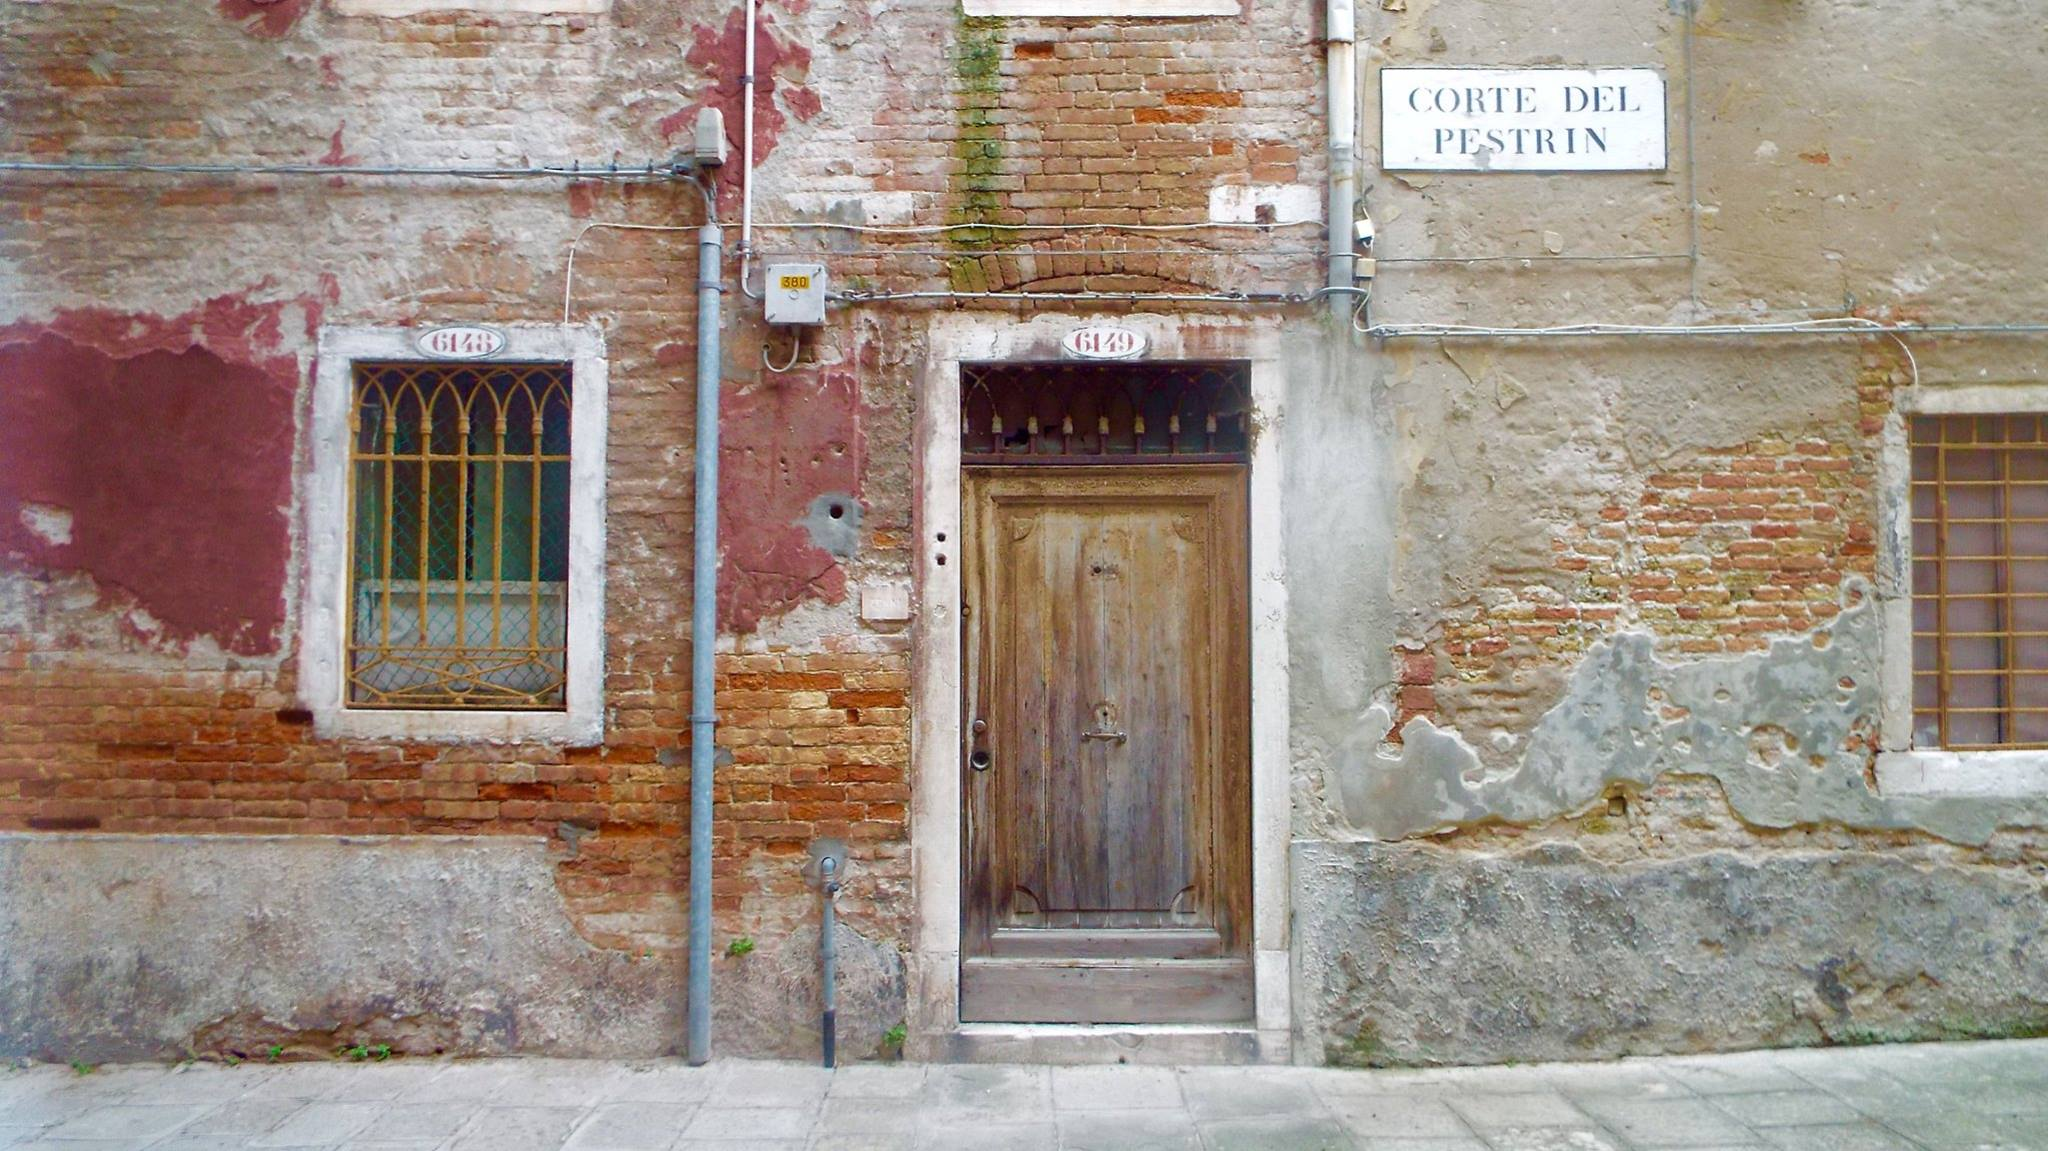 Front facade of an old Italian building with worn out plaster, paint and bricks, a door, window and street sign